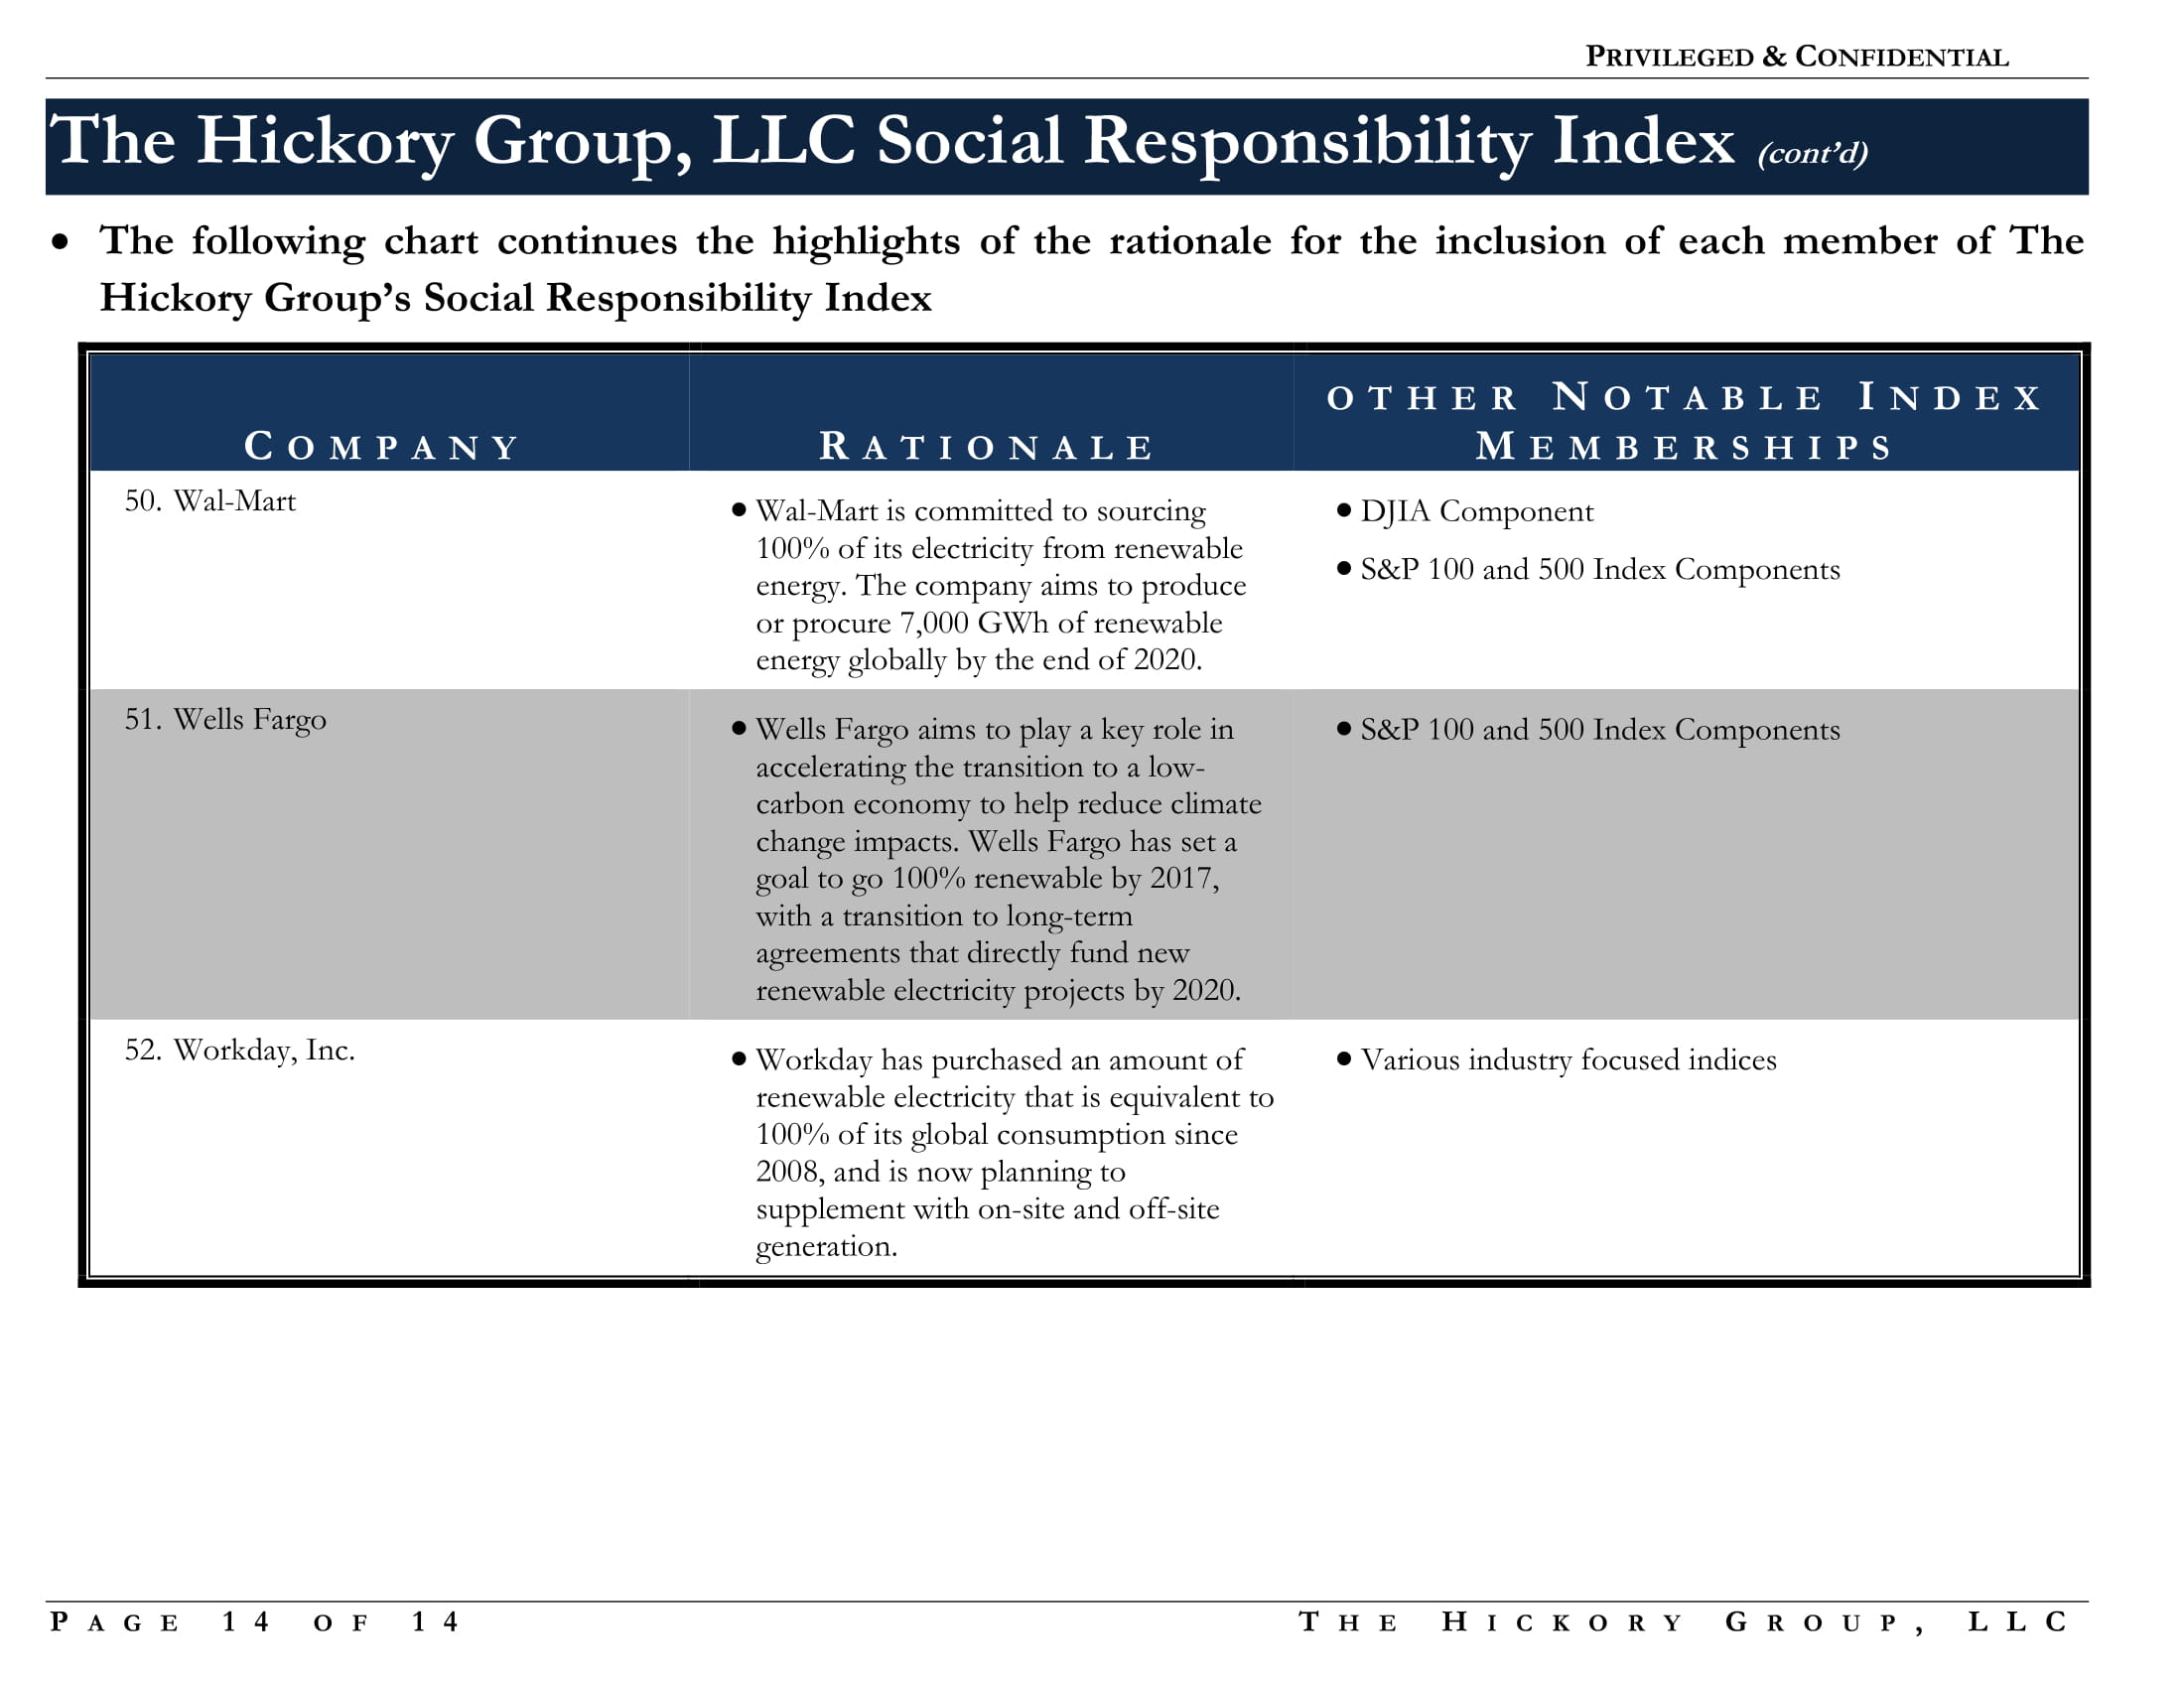 FINAL Social Responsibility Index  Notes and Rationale (7 October 2017) Privileged and Confidential-14.jpg